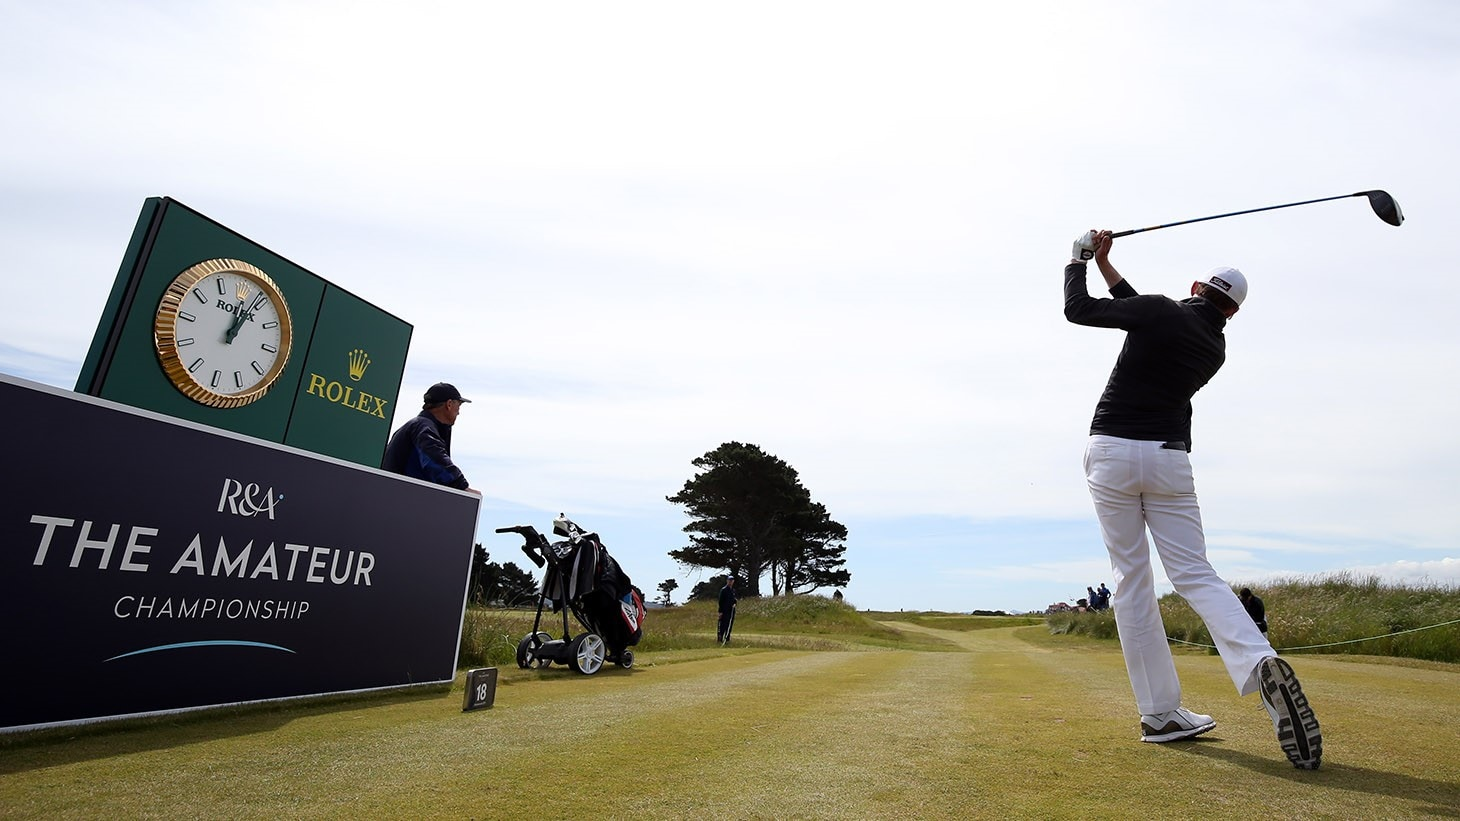 An amateur competitor tees off during the R&A Amateur Championship at Portmarnock